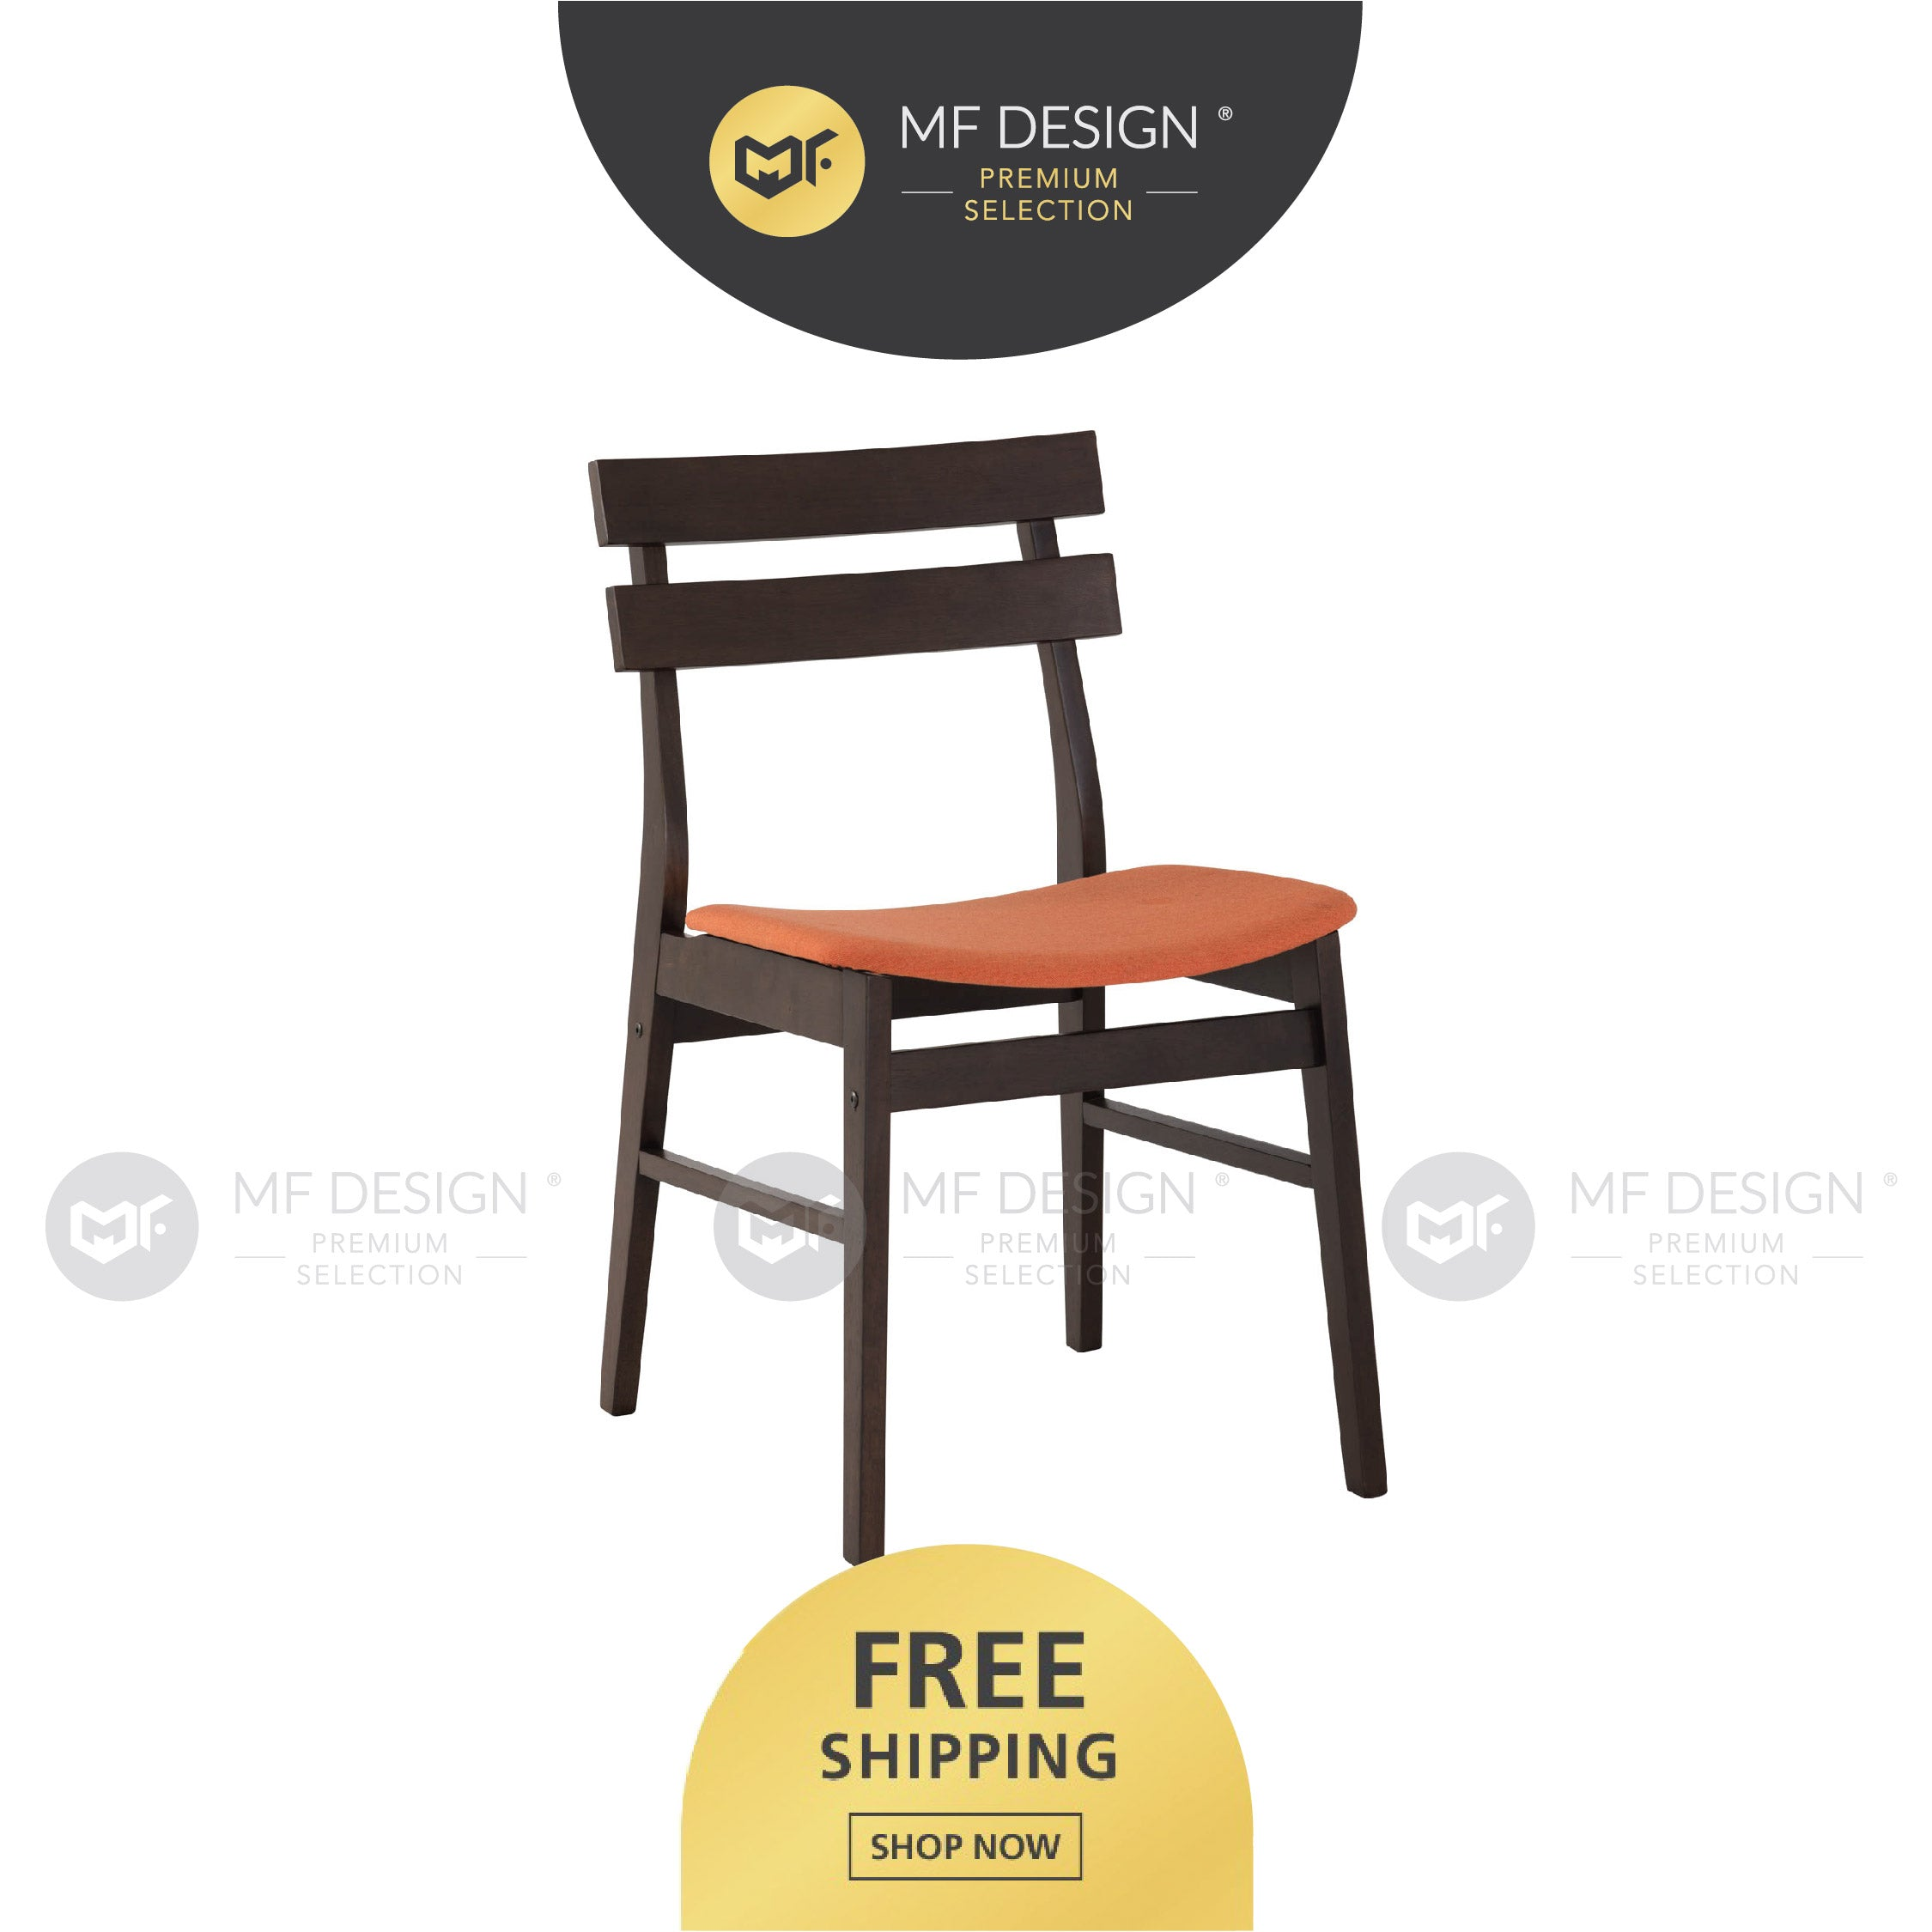 MFD Premium Albert Dining Chair /Wooden Chair / Solid Rubber Wood / Kerusi Makan Kayu Getah / Living Room / Scandinavian